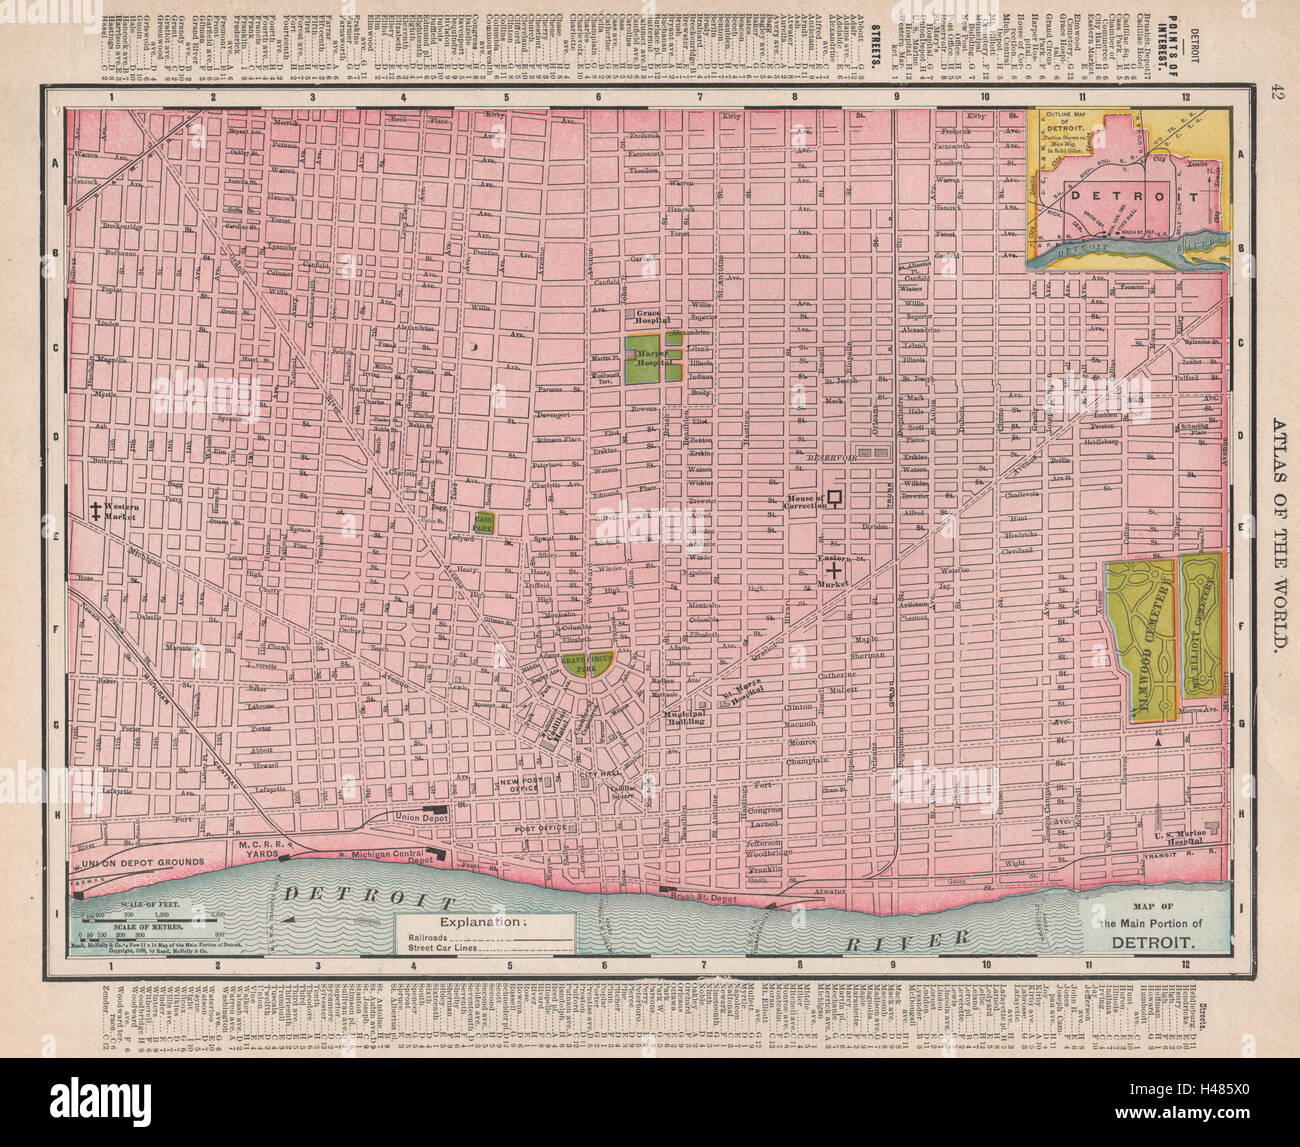 Detroit town city map plan. Michigan. RAND MCNALLY 1912 old ... on map of porter county, map of st. john, map of braddock, map of granger, map of ray, map of monon railroad, map of lawrenceburg, map of detroit, map of beverly shores, map of turkey run state park, map of dubois county, map of kalamazoo, map of kewaunee, map of new carlisle, map of ironwood, map of rossville, map of lansing, map of batesville, map of kendallville, map of indiana,